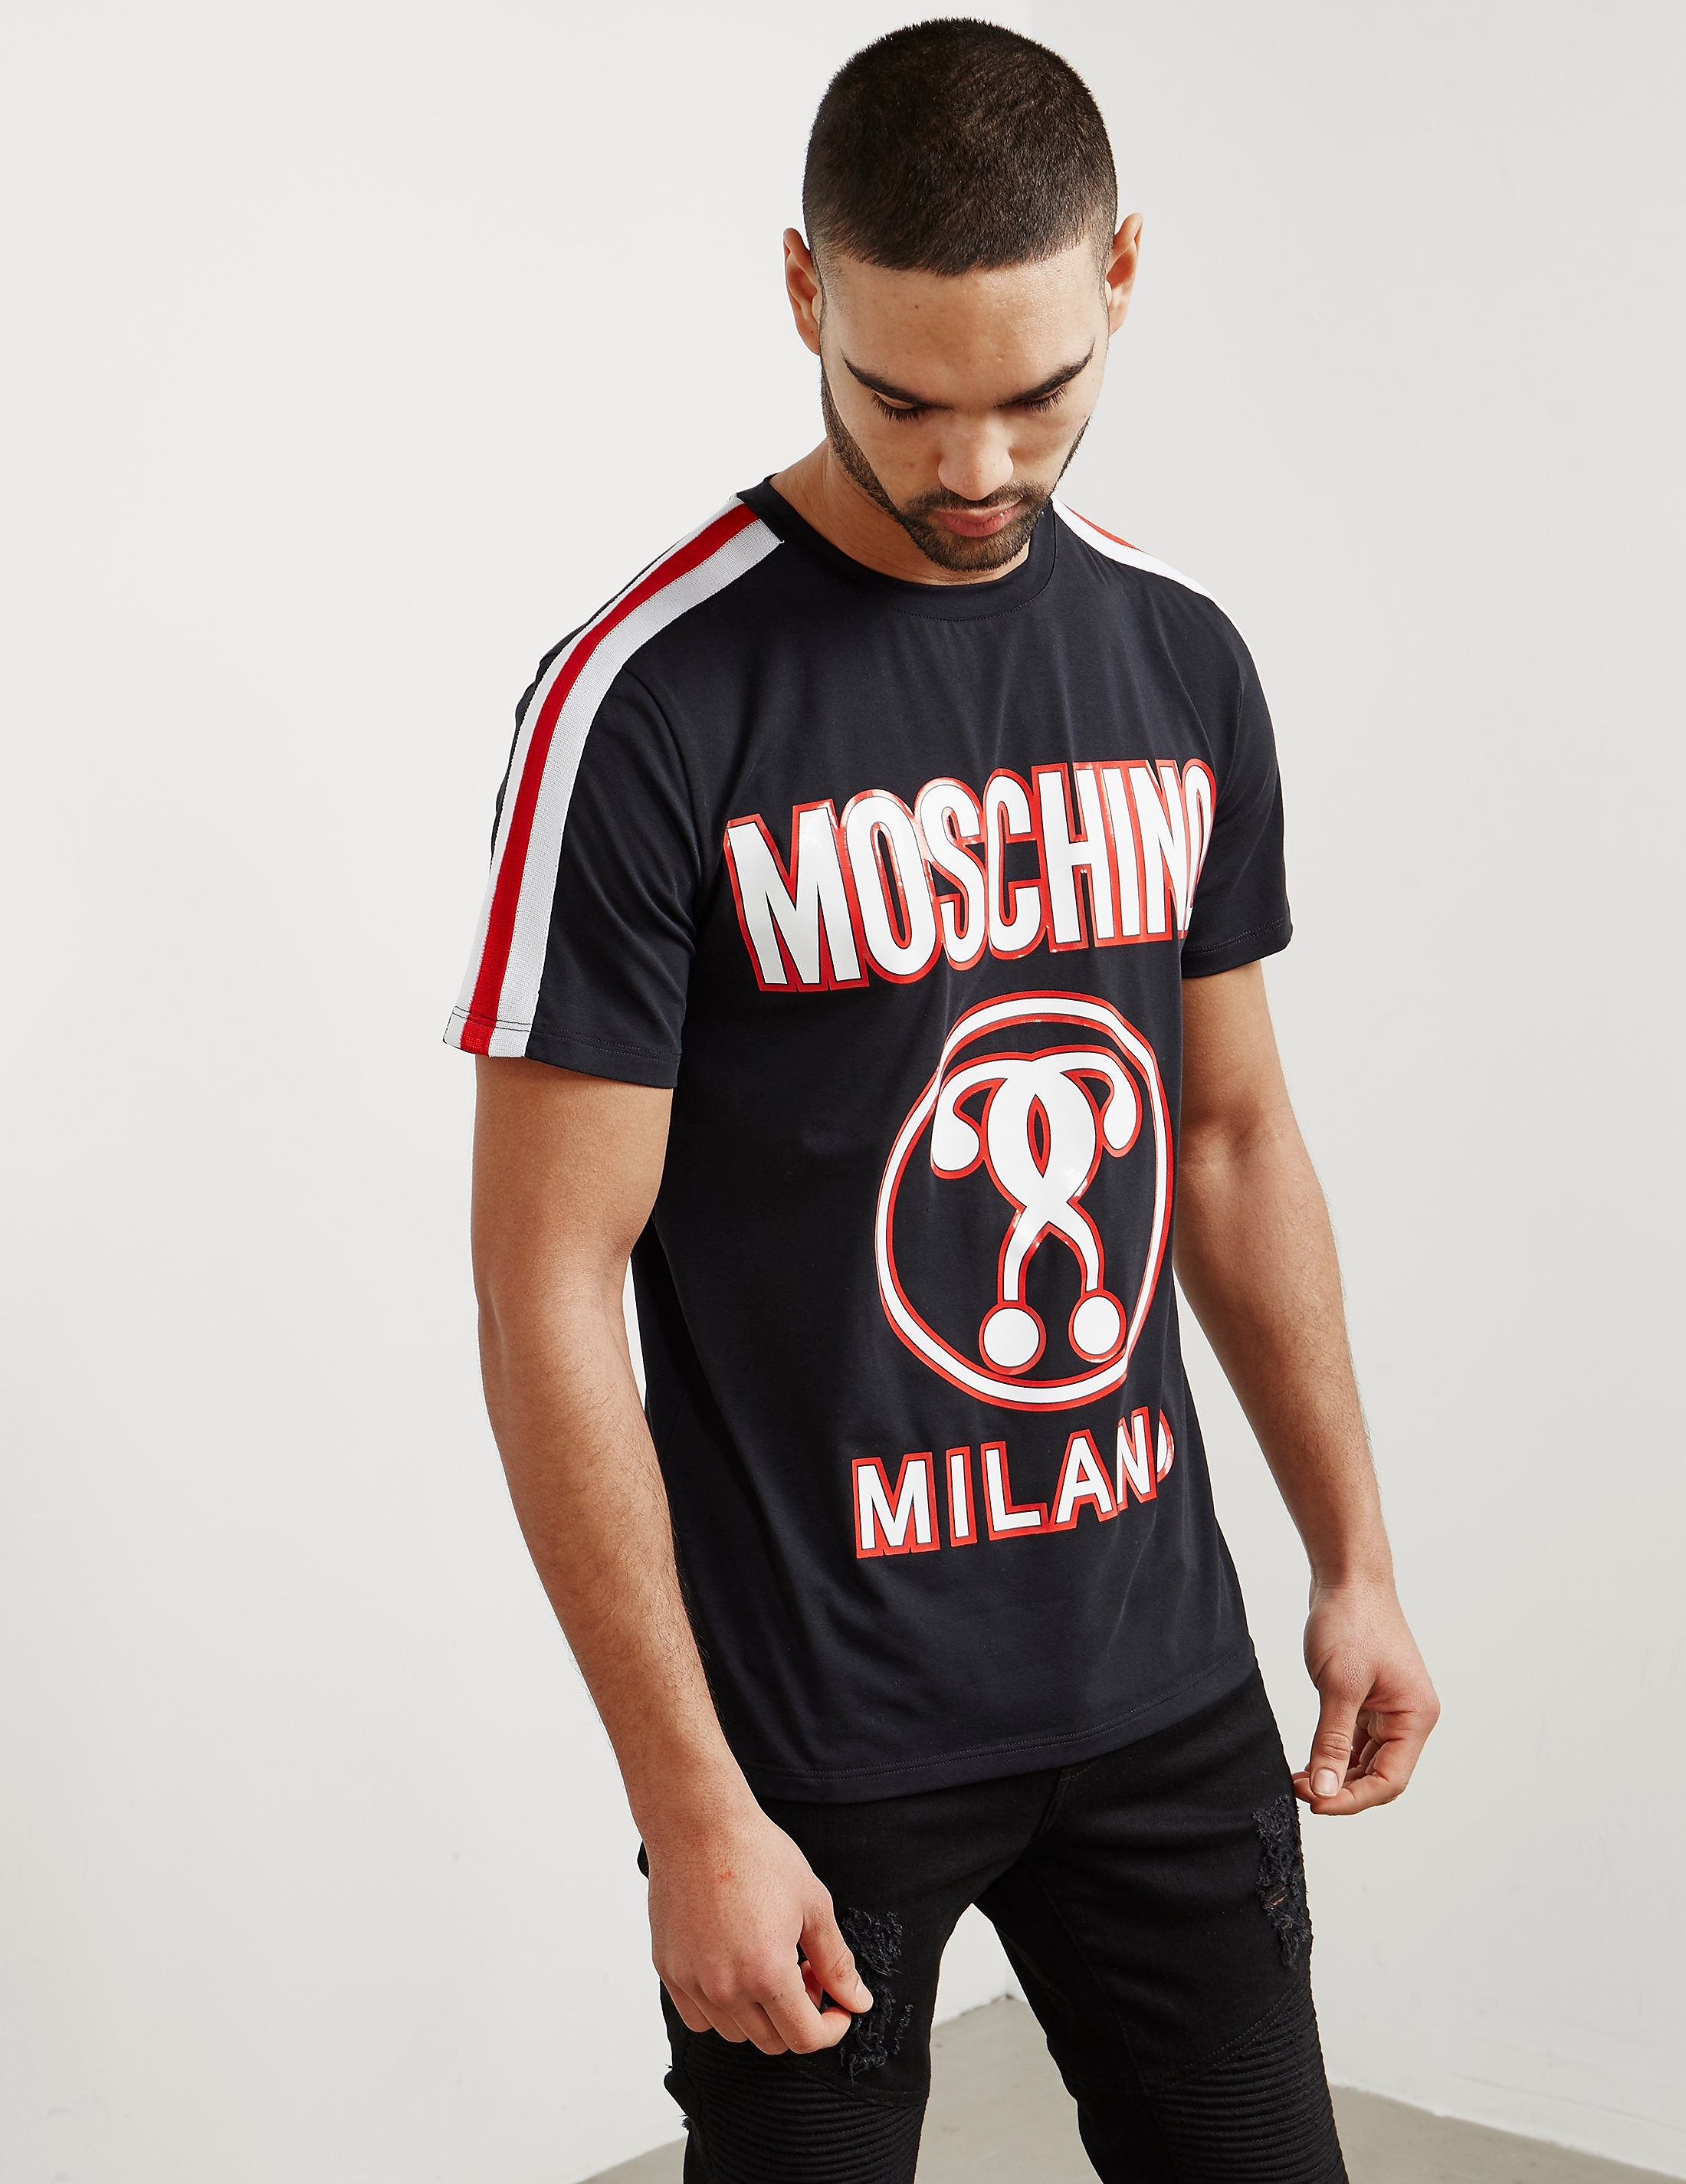 Moschino Milano Short Sleeve T-Shirt - Online Exclusive